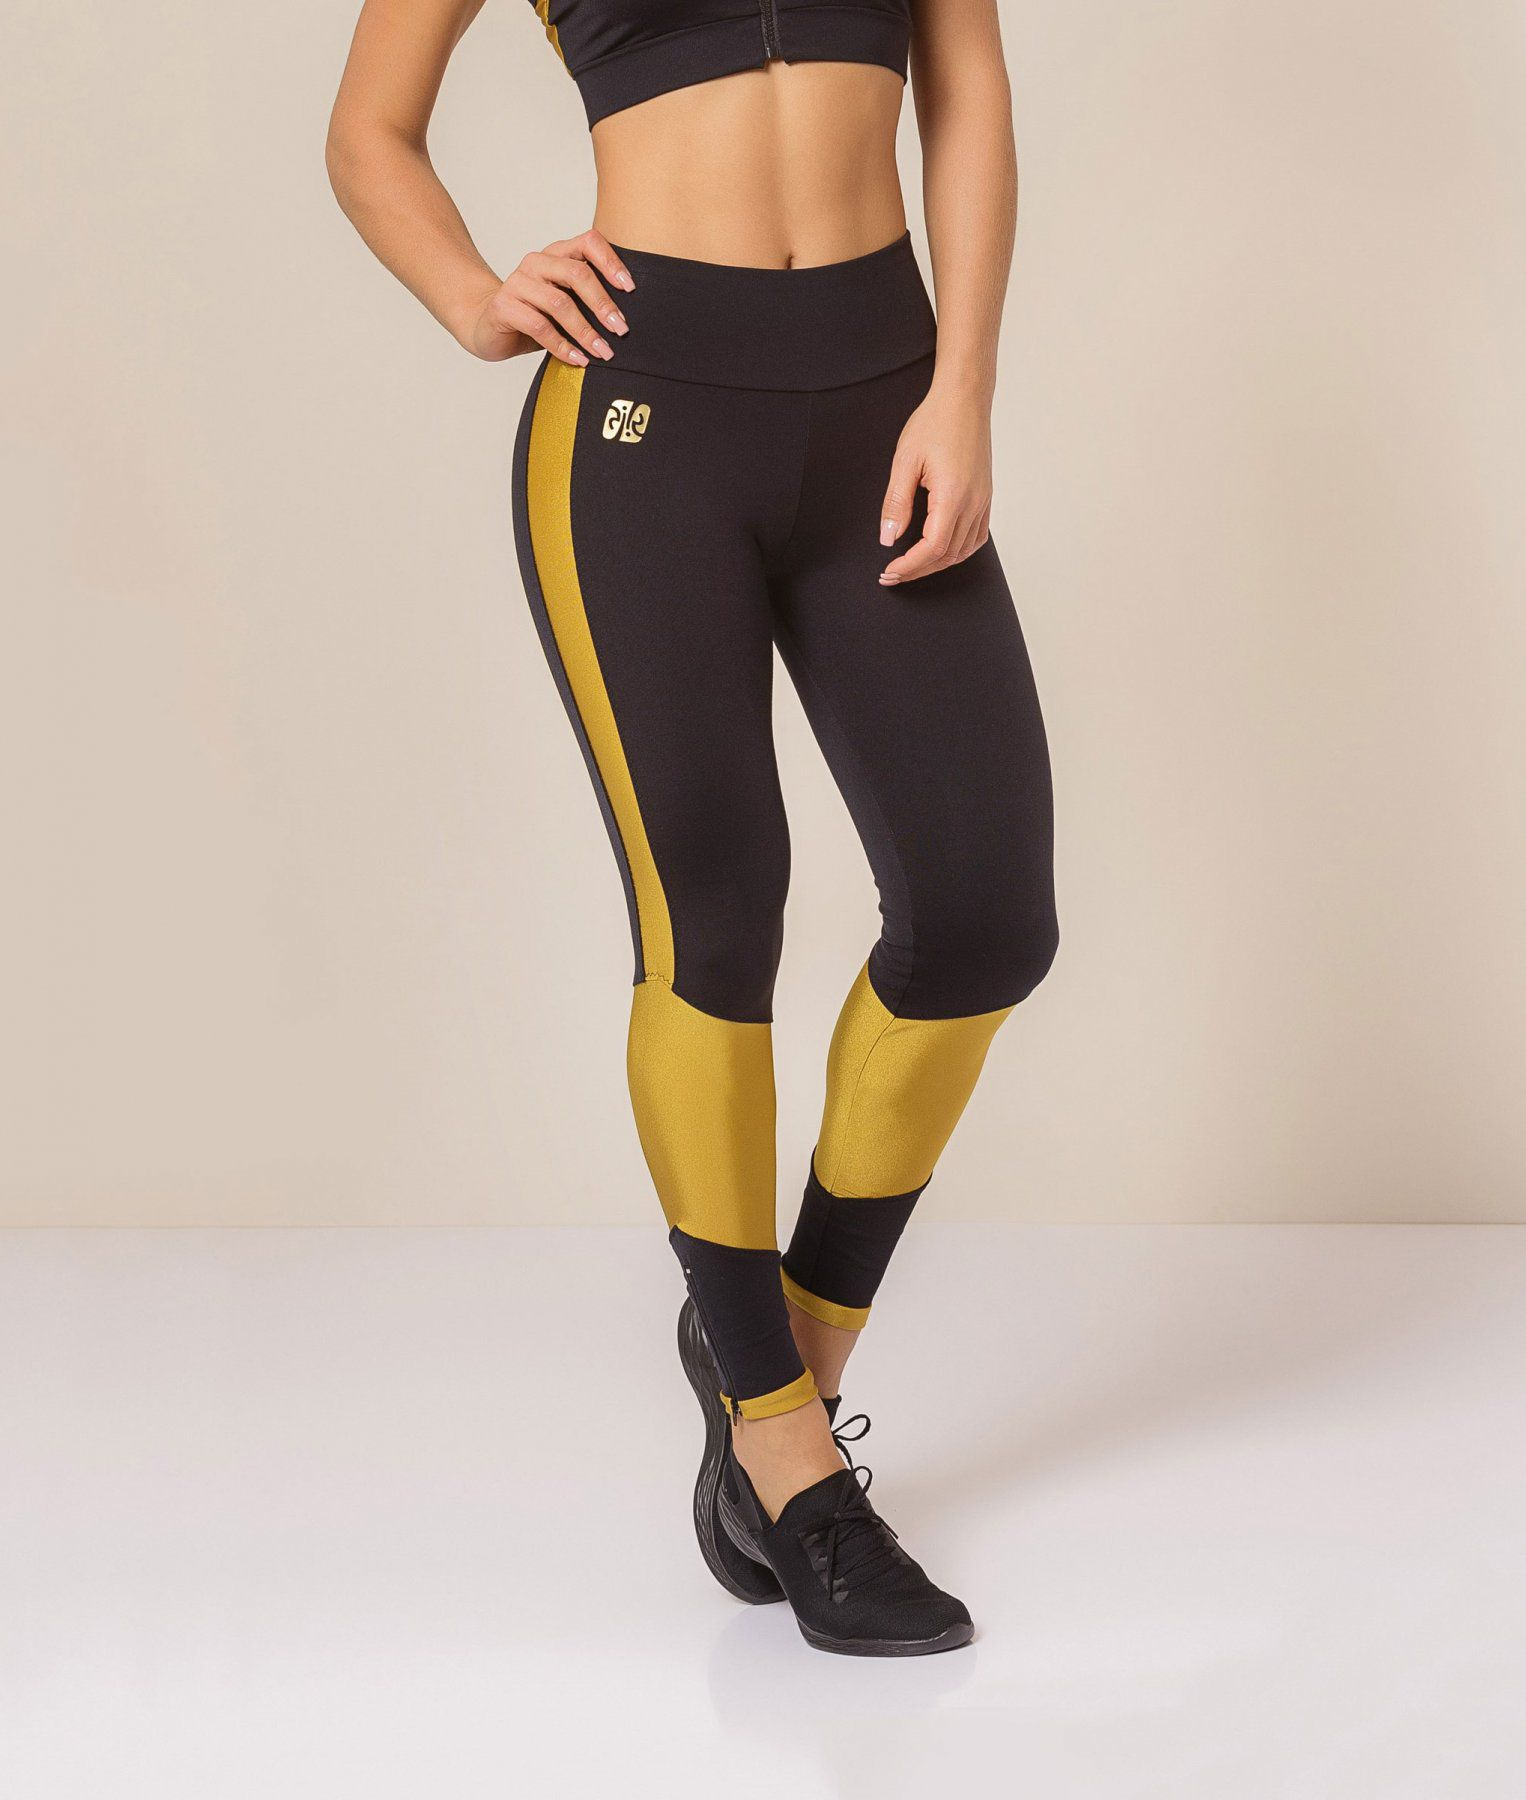 Legging Supplex com Zíper